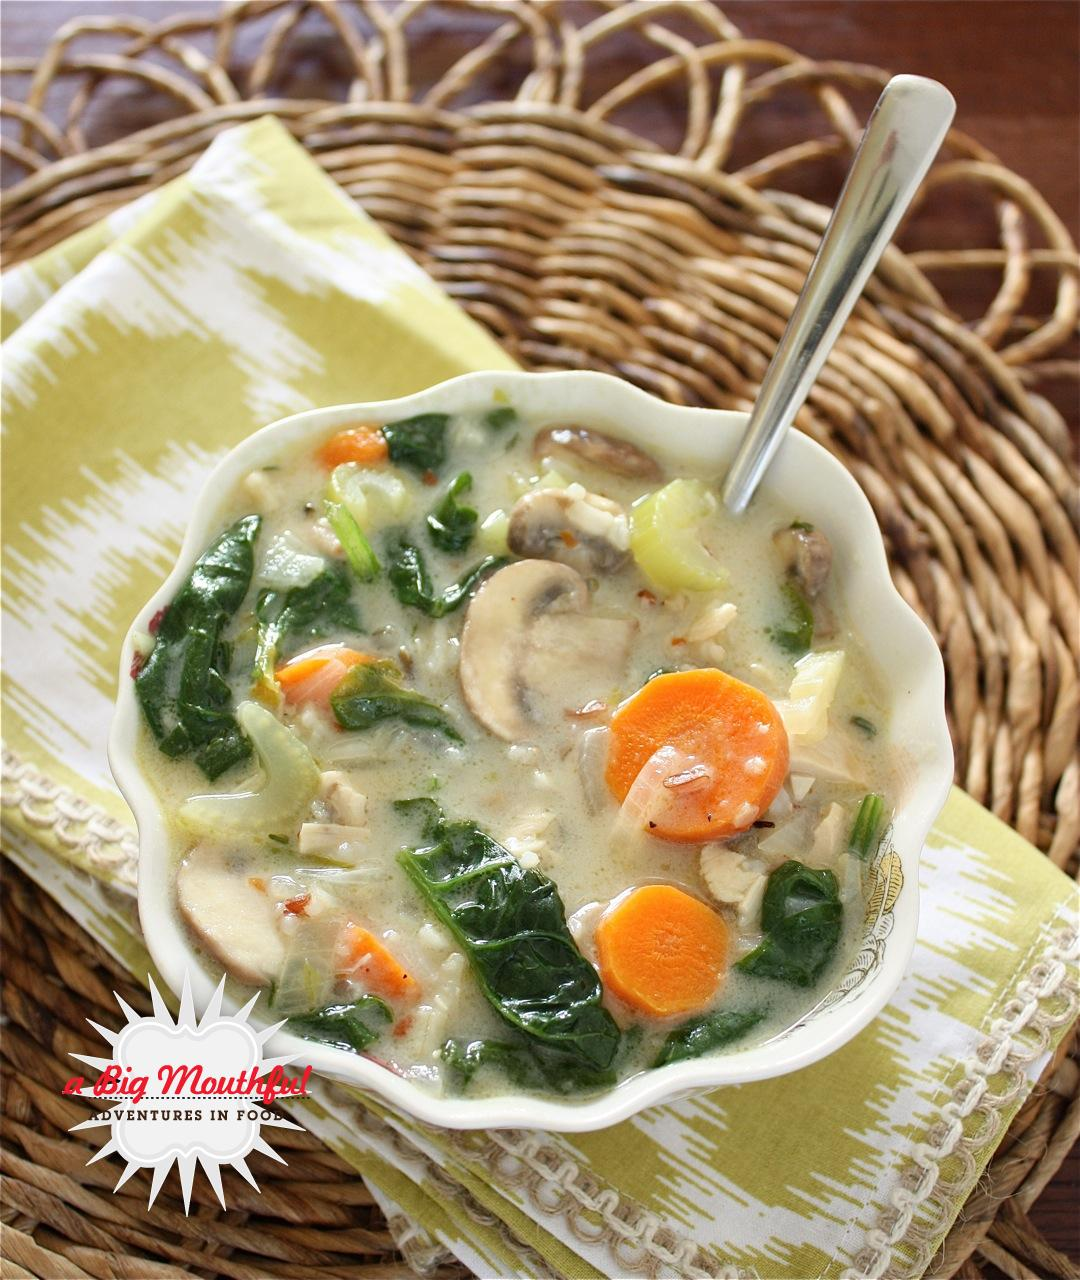 Chicken, Mushroom and Wild Rice Soup with Spinach